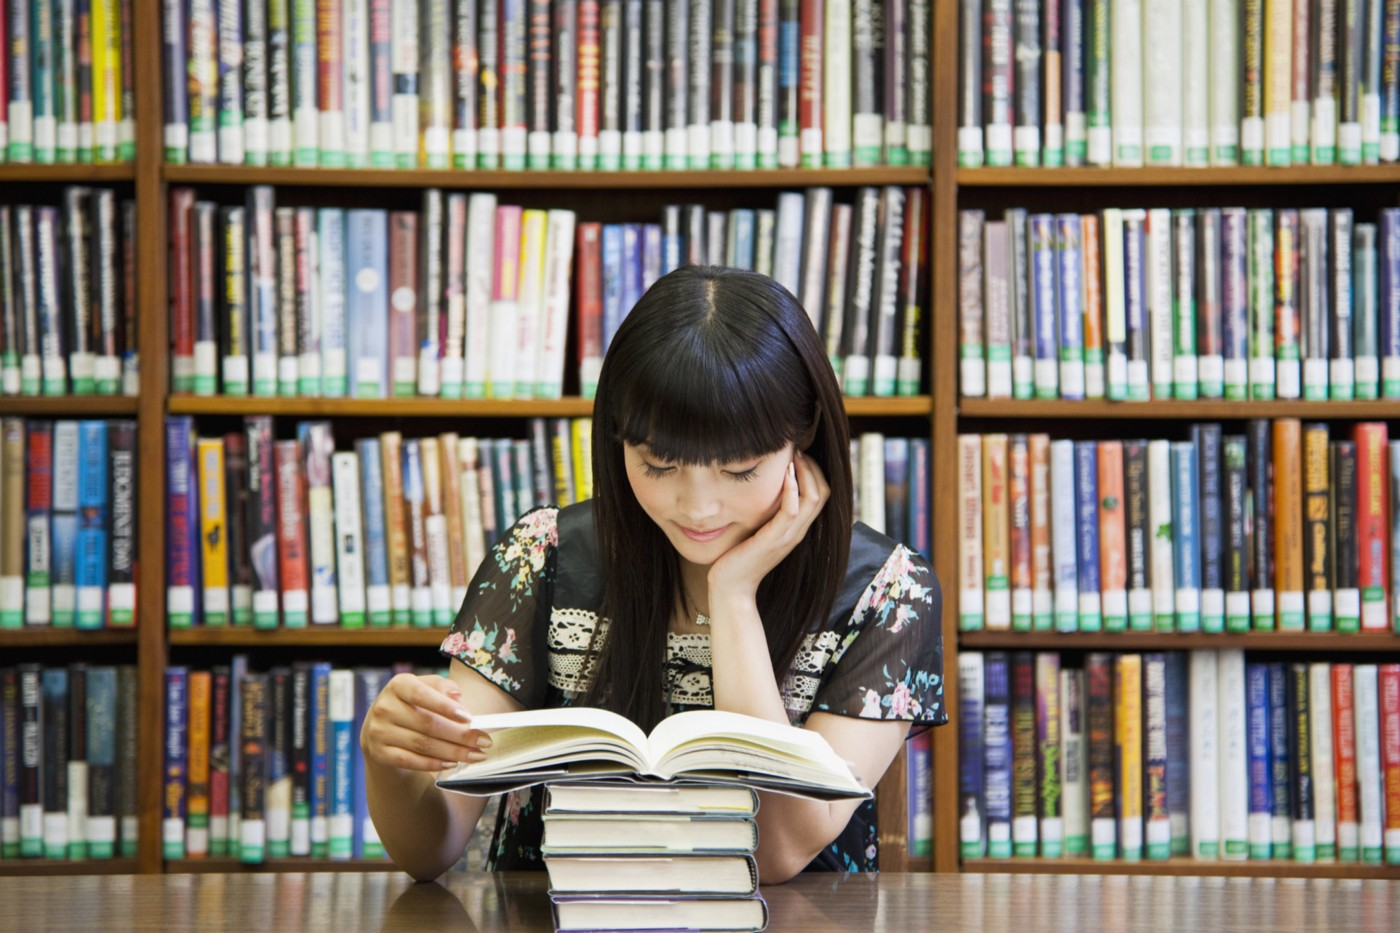 A photo of an Asian woman reading a book at a library.